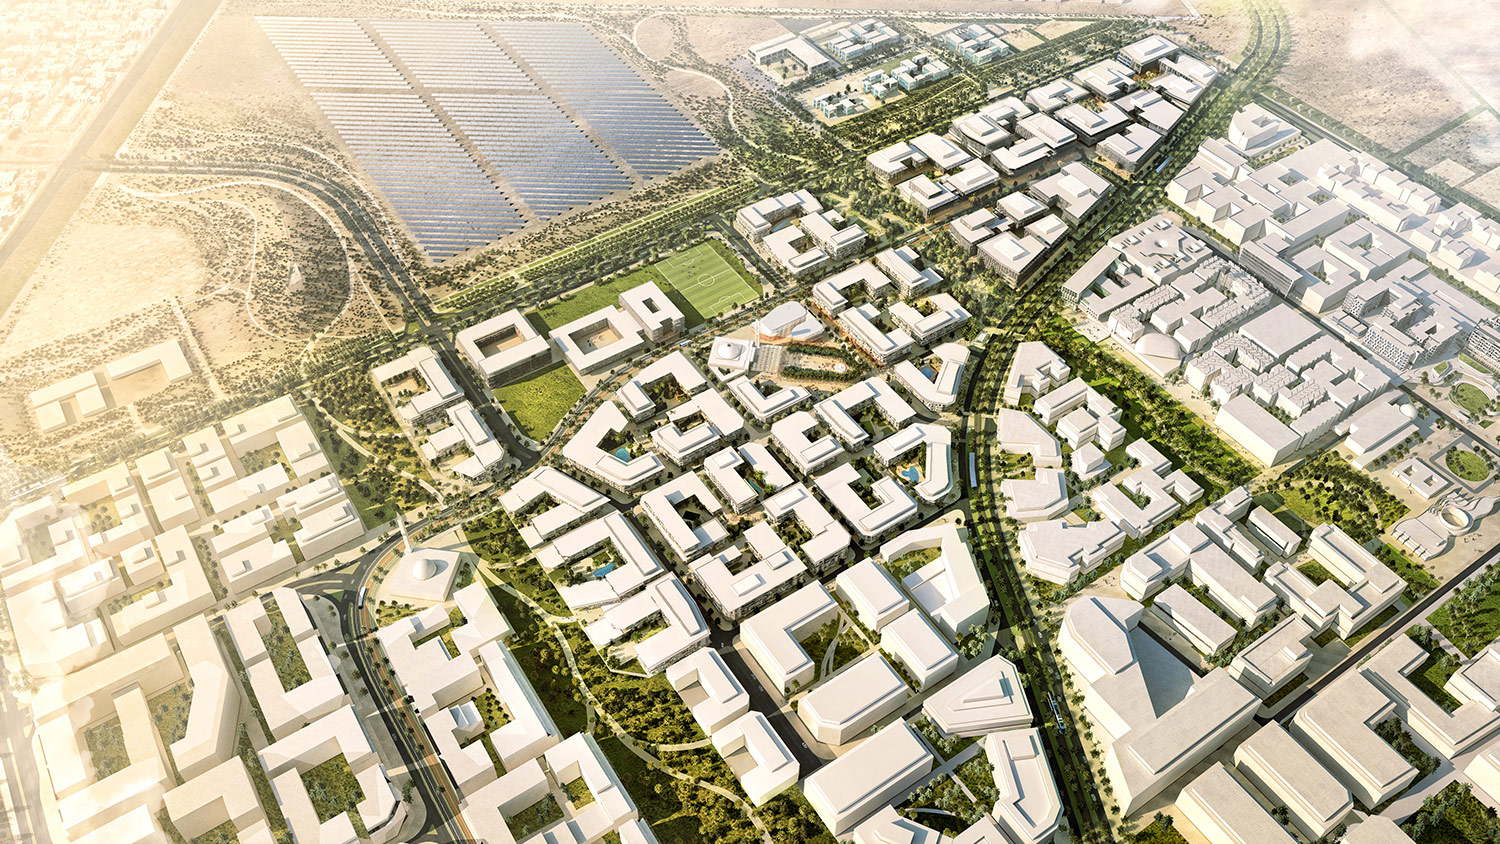 Urban design expertise cbt - What is urban planning and design ...